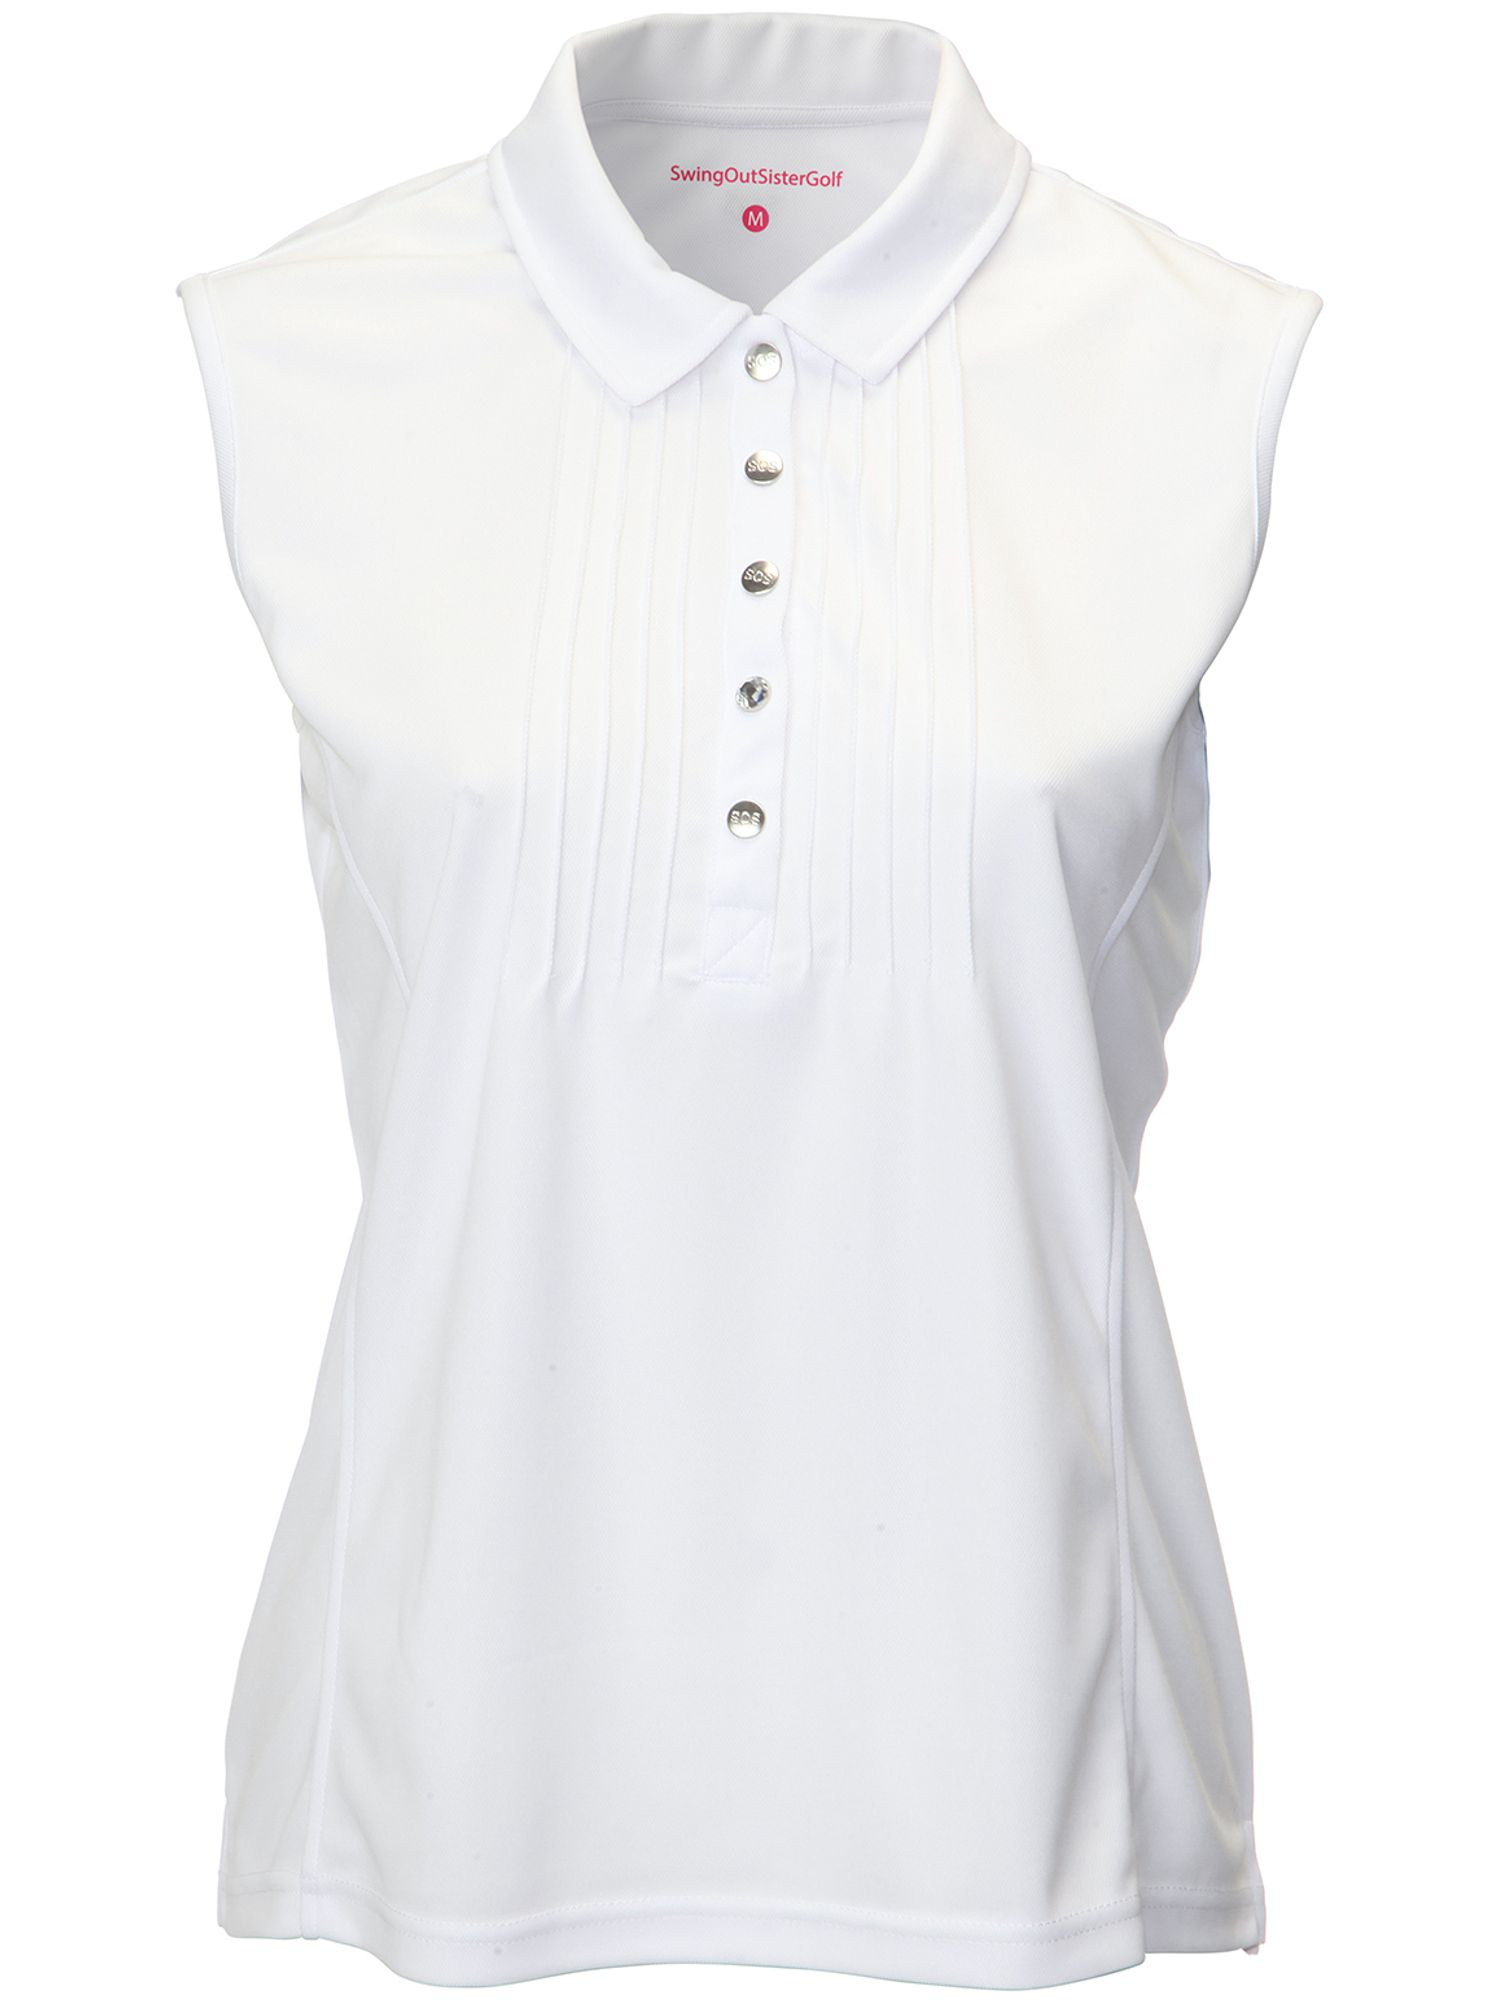 Swing Out Sister Adele Pique Sleeveless Shirt, White